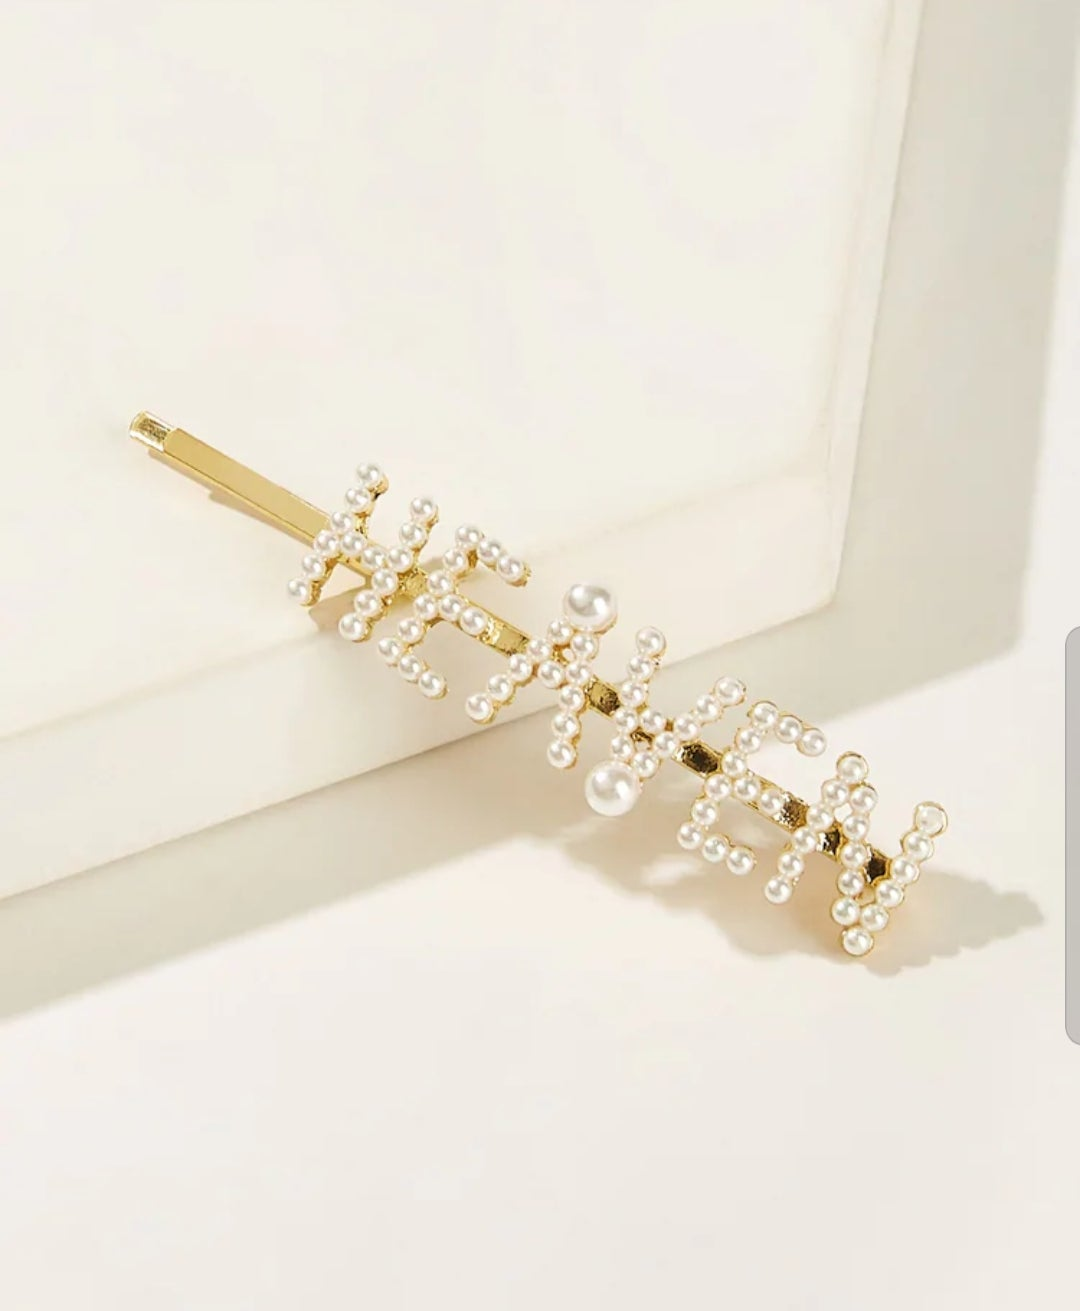 Gold Hair Pins